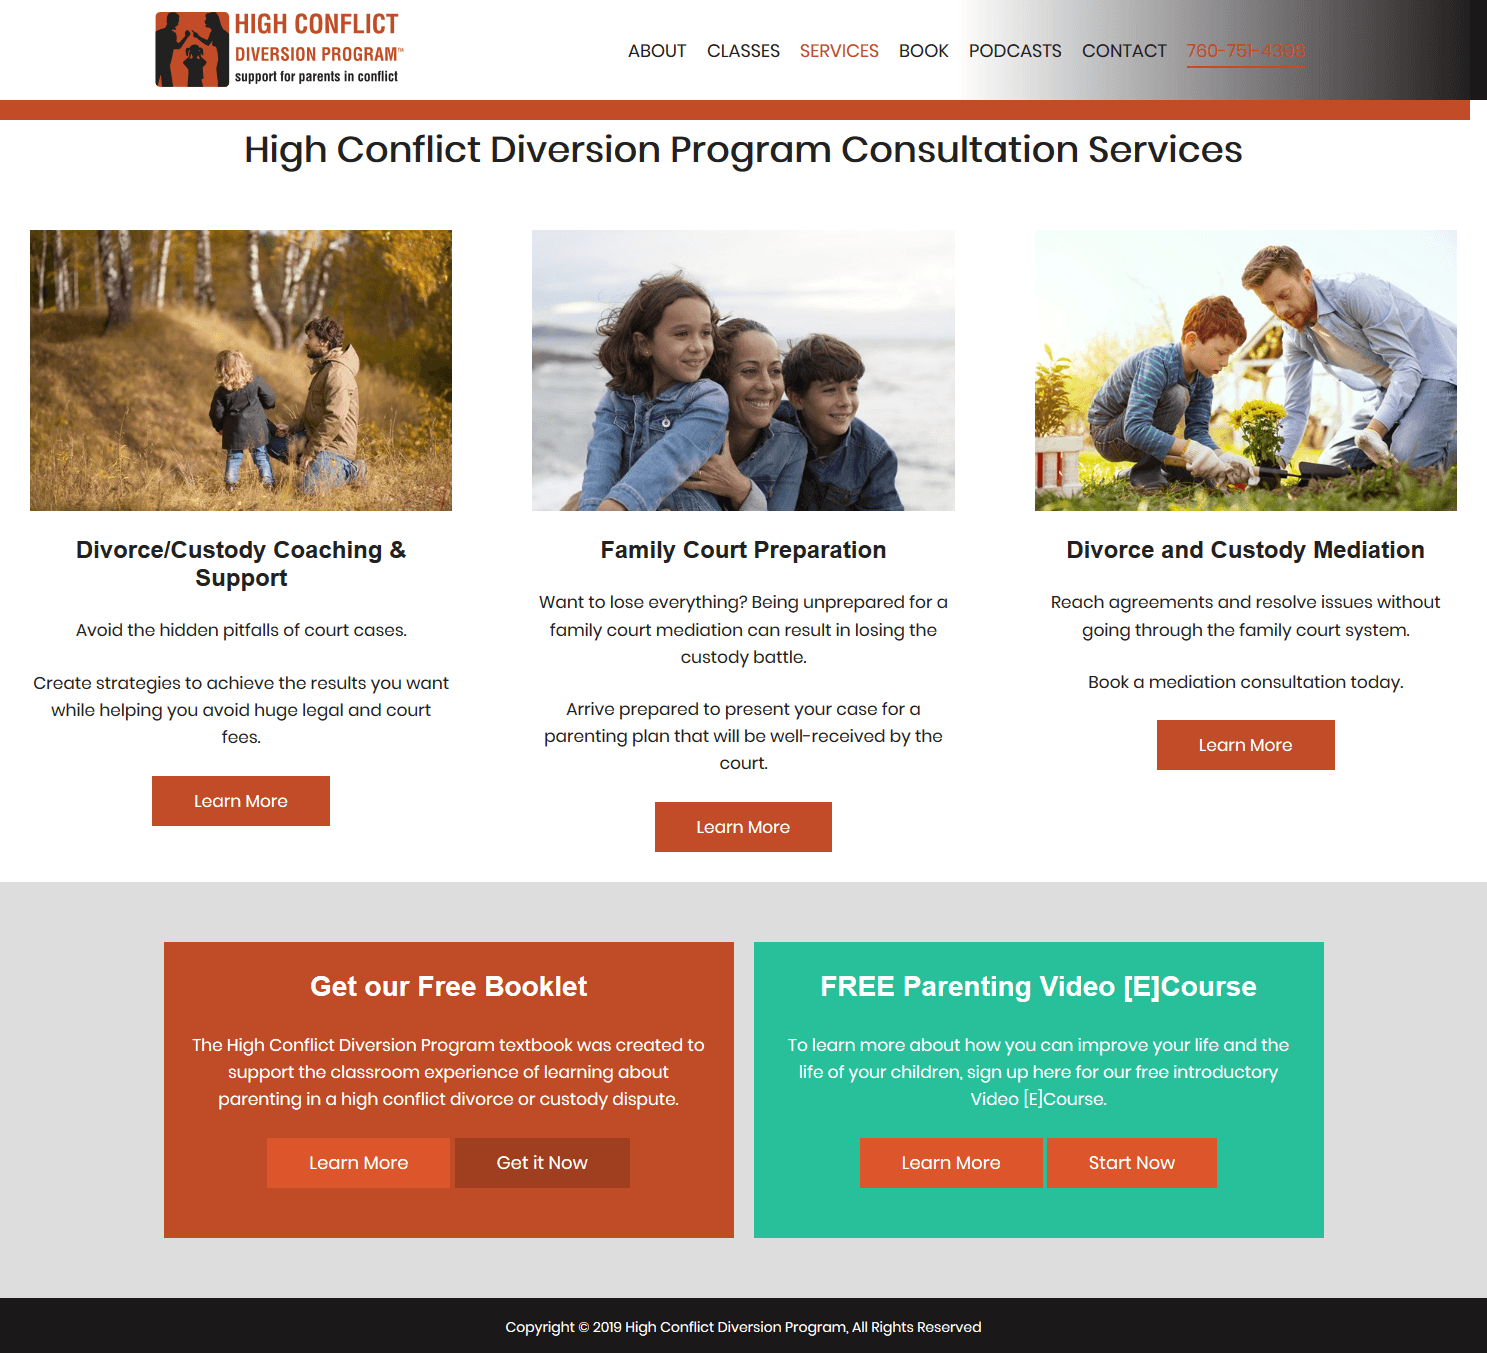 High Conflict Diversion Program Services